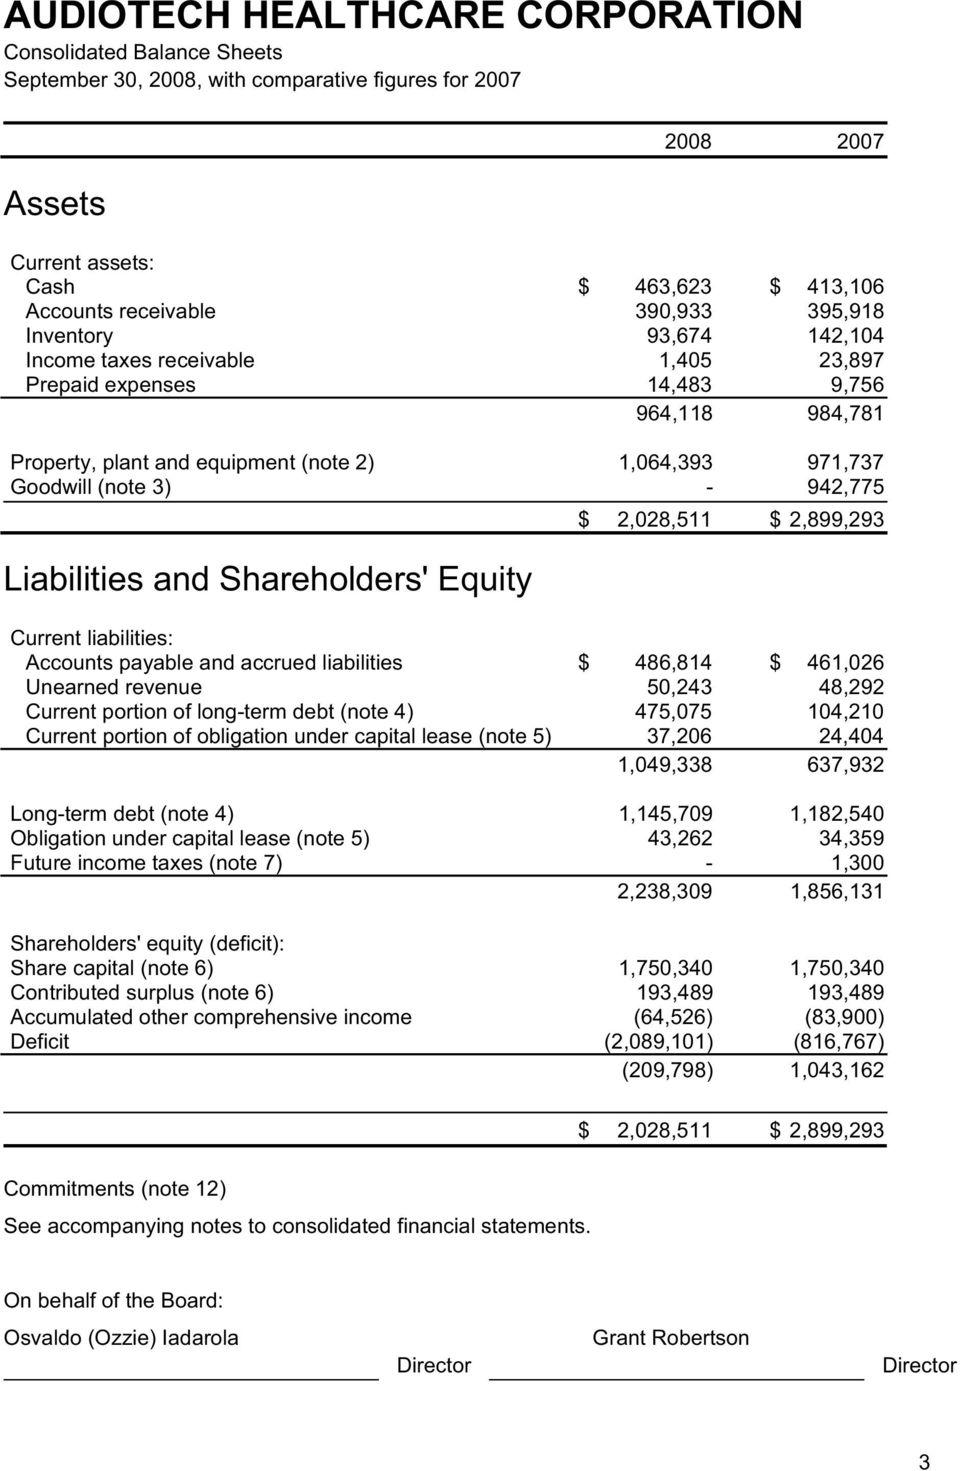 and Shareholders' Equity Current liabilities: Accounts payable and accrued liabilities $ 486,814 $ 461,026 Unearned revenue 50,243 48,292 Current portion of long-term debt (note 4) 475,075 104,210